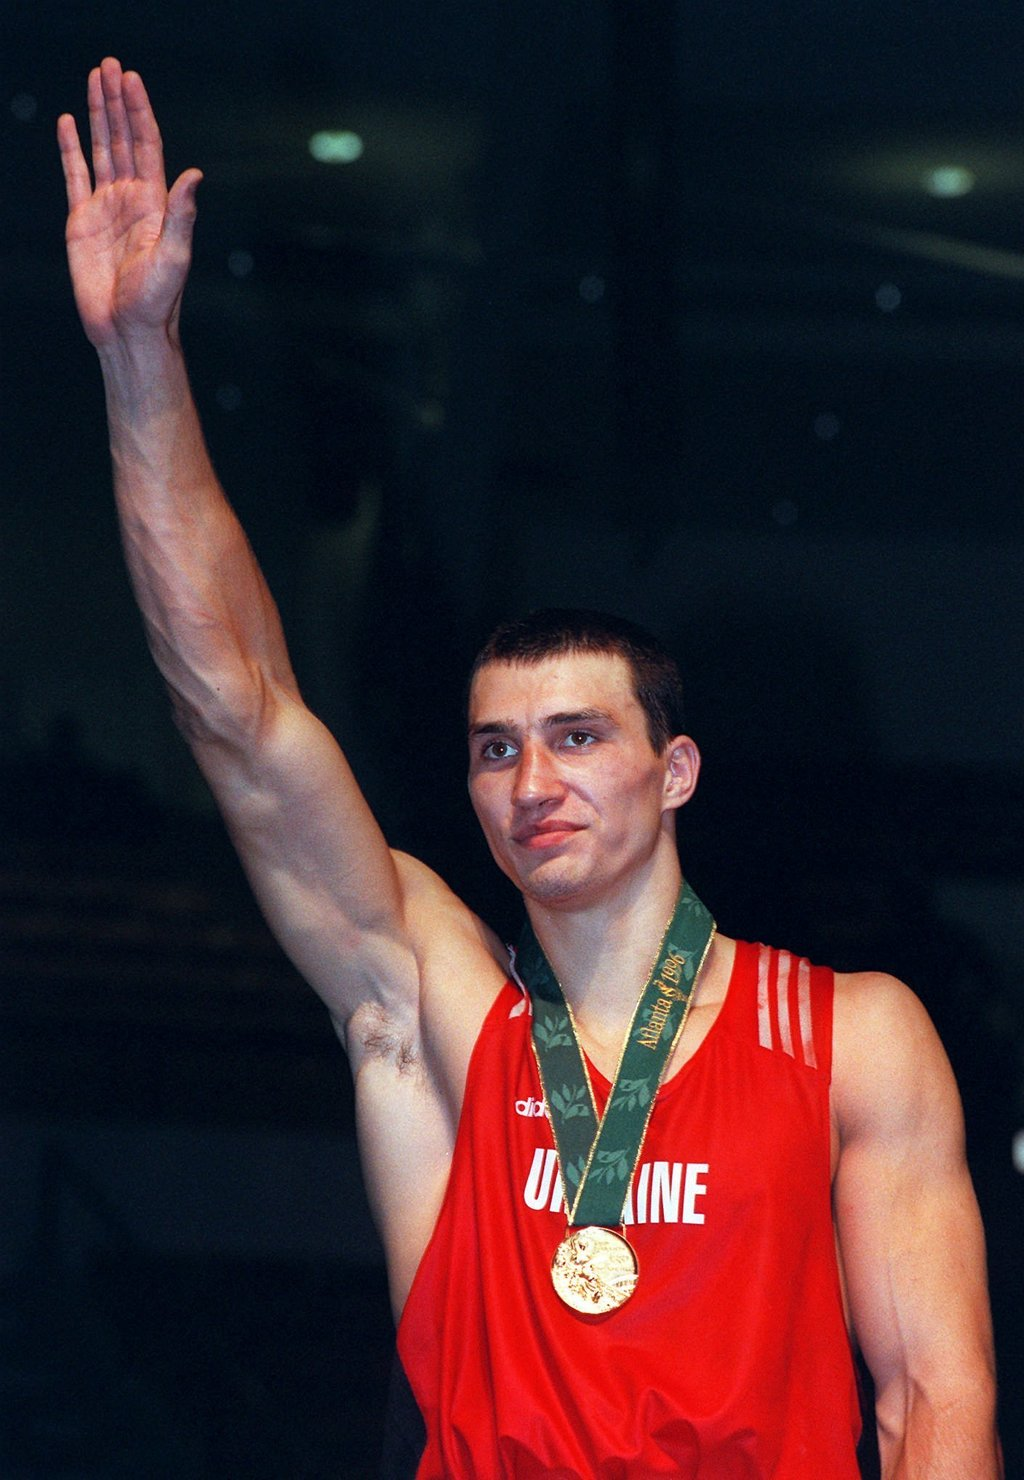 FILE - In this April 8, 1996 file photo Ukrainian boxer Wladimir Klitschko poses with his gold medal at the 1996 Atlanta Olympic Games. Former heavywe...